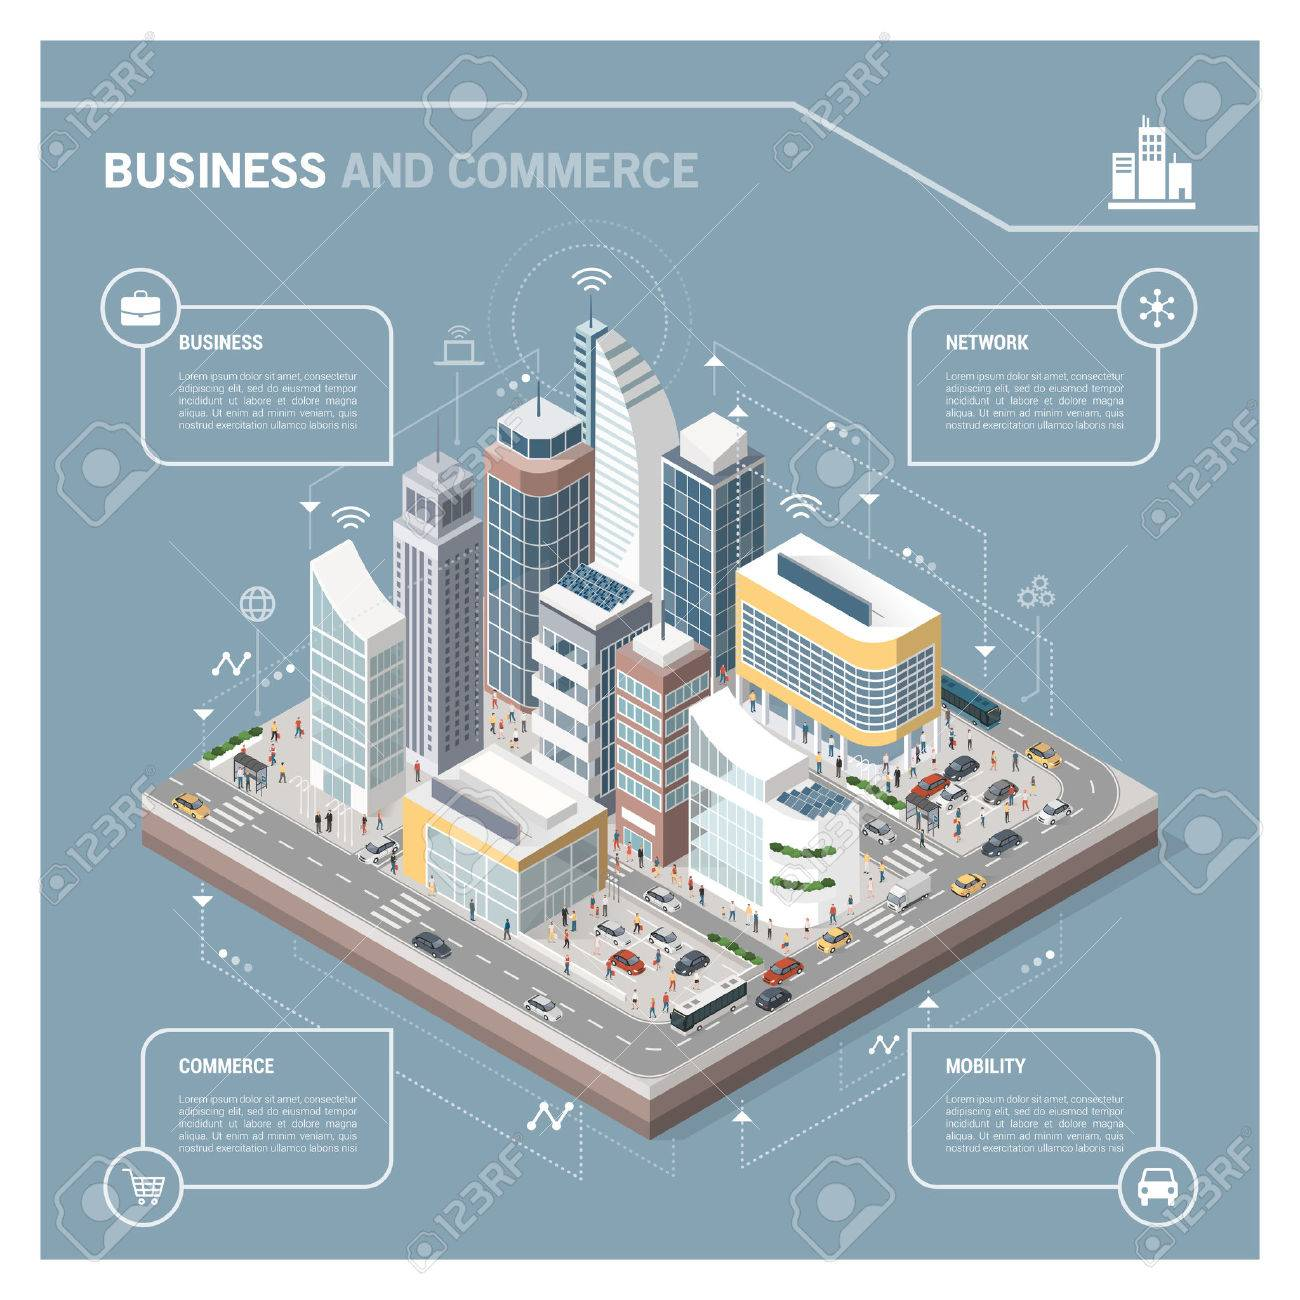 Isometric vector city with skyscrapers, people, streets and vehicles, commercial and business area infographic with icons Foto de archivo - 73037800